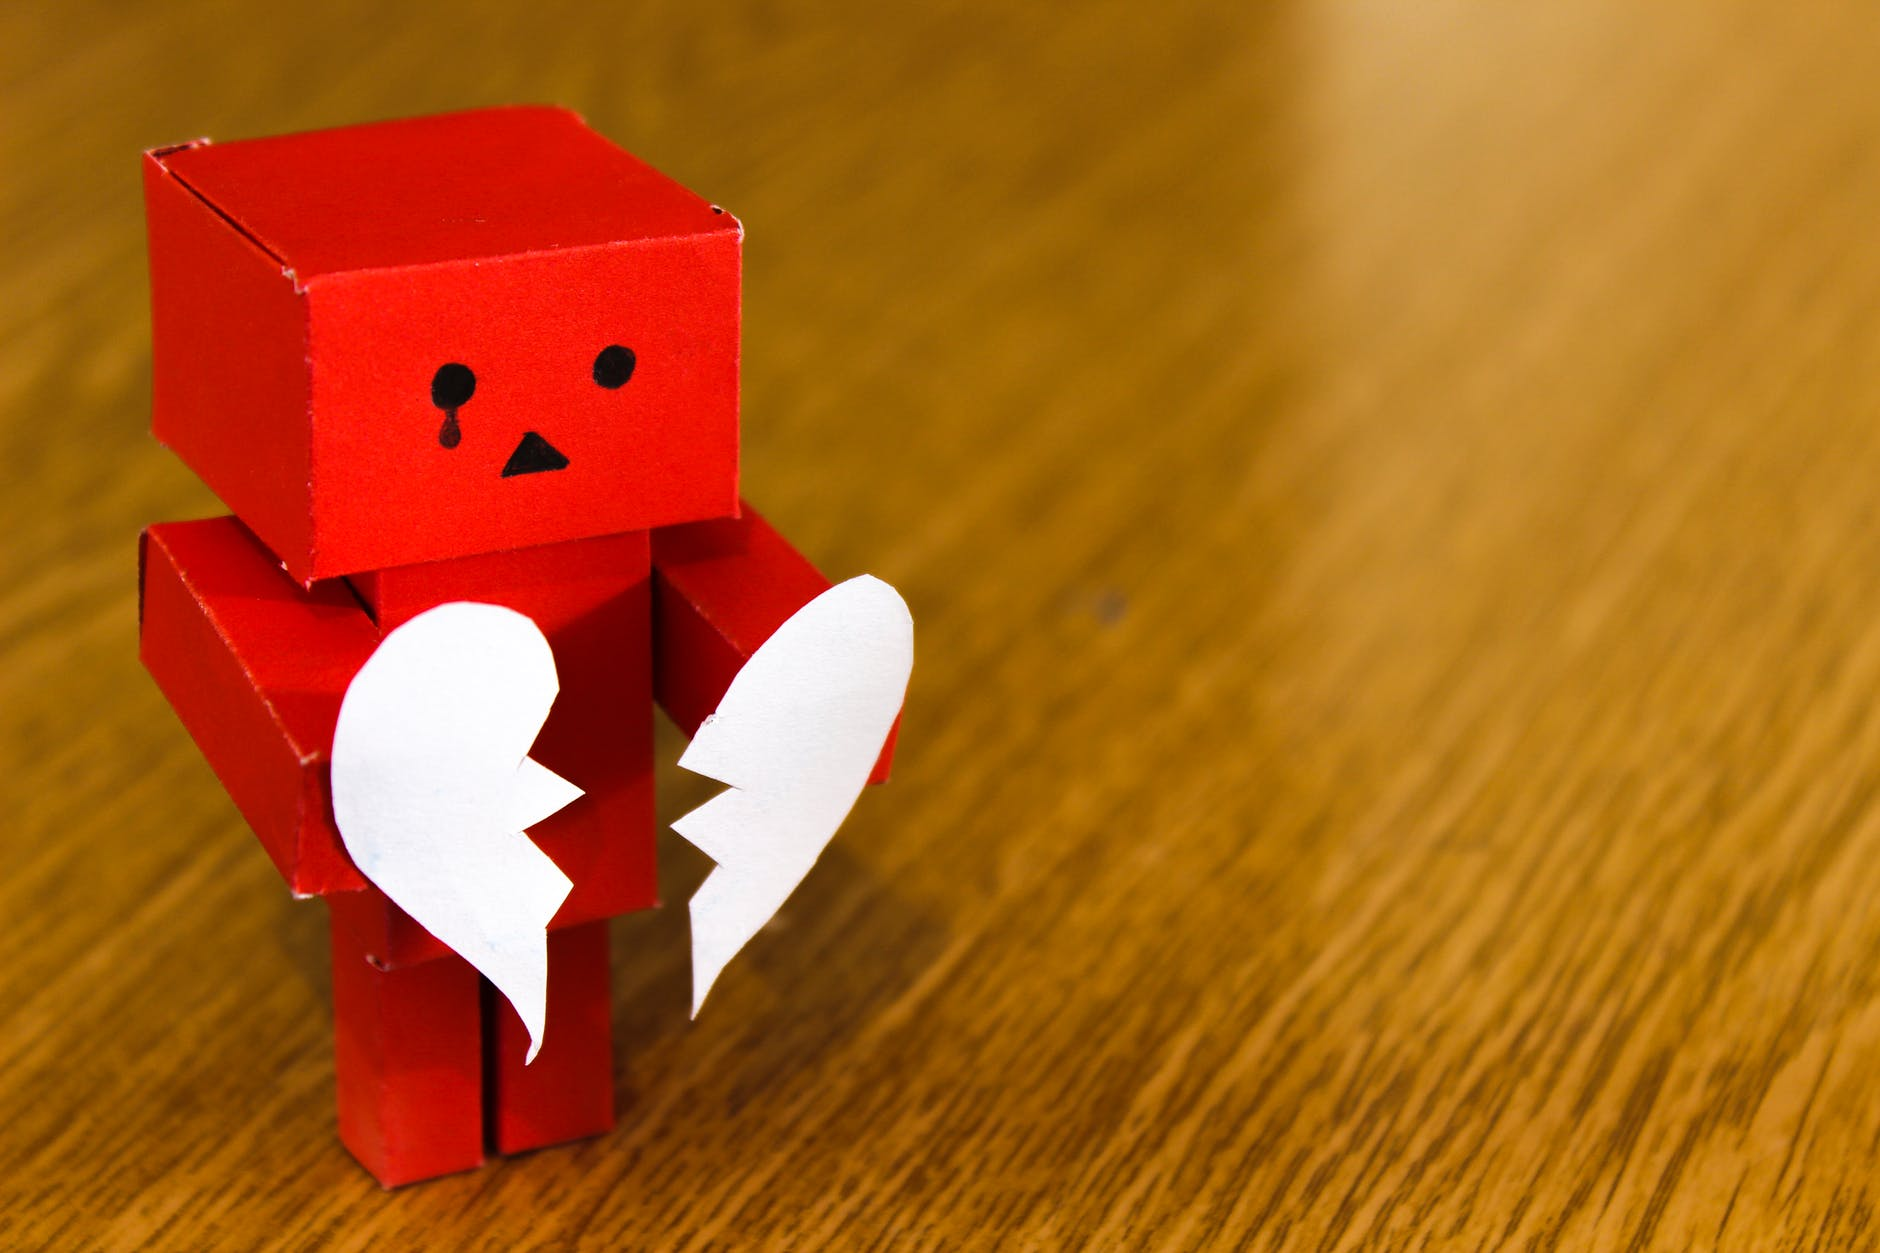 small red paper robot holding a broken paper heart - divorce causes huge stress